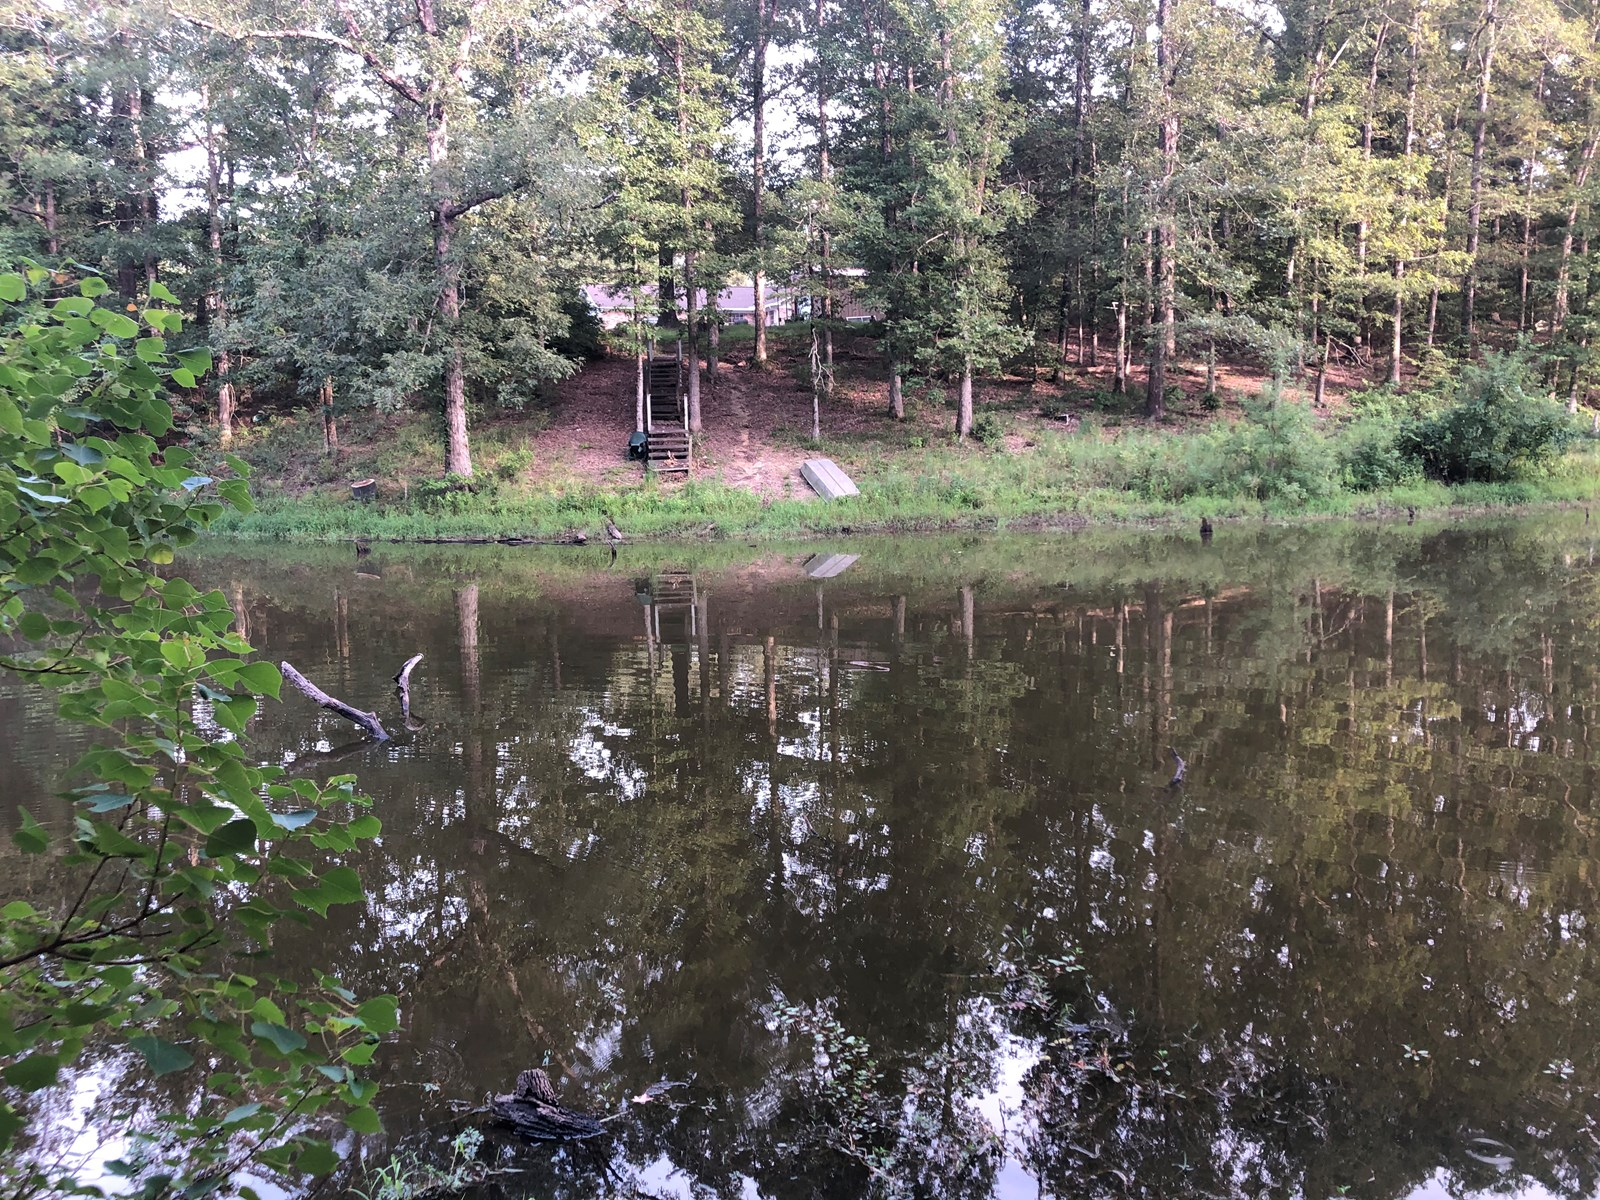 Timberland /w Pond on Co. Road for Sale near Frenchport, AR